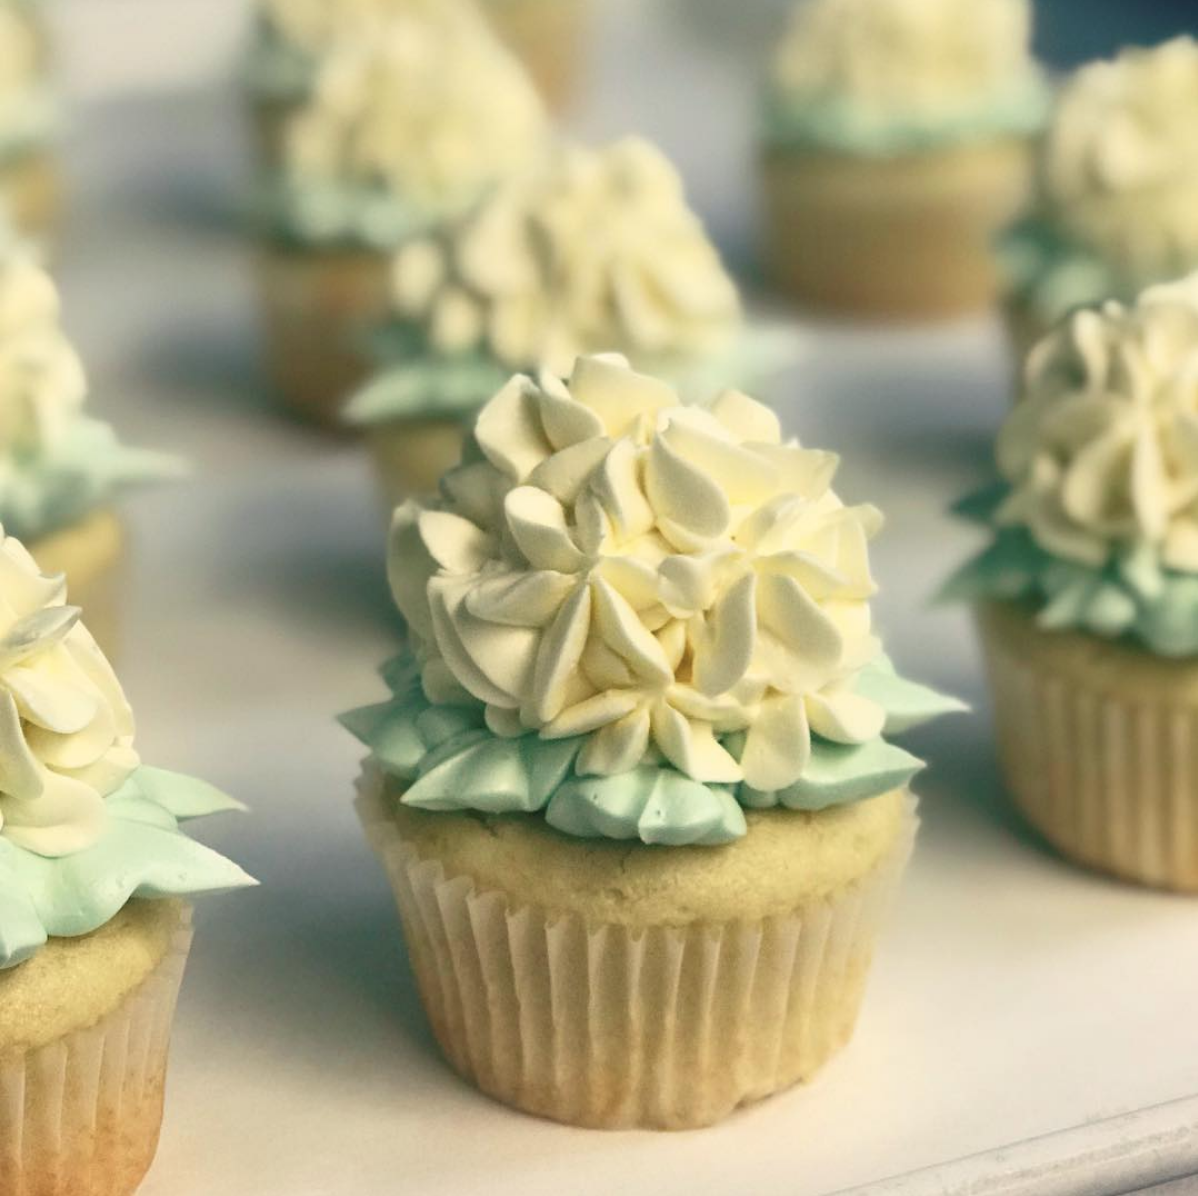 Lemon Raspberry cupcakes with a floral frosting design.